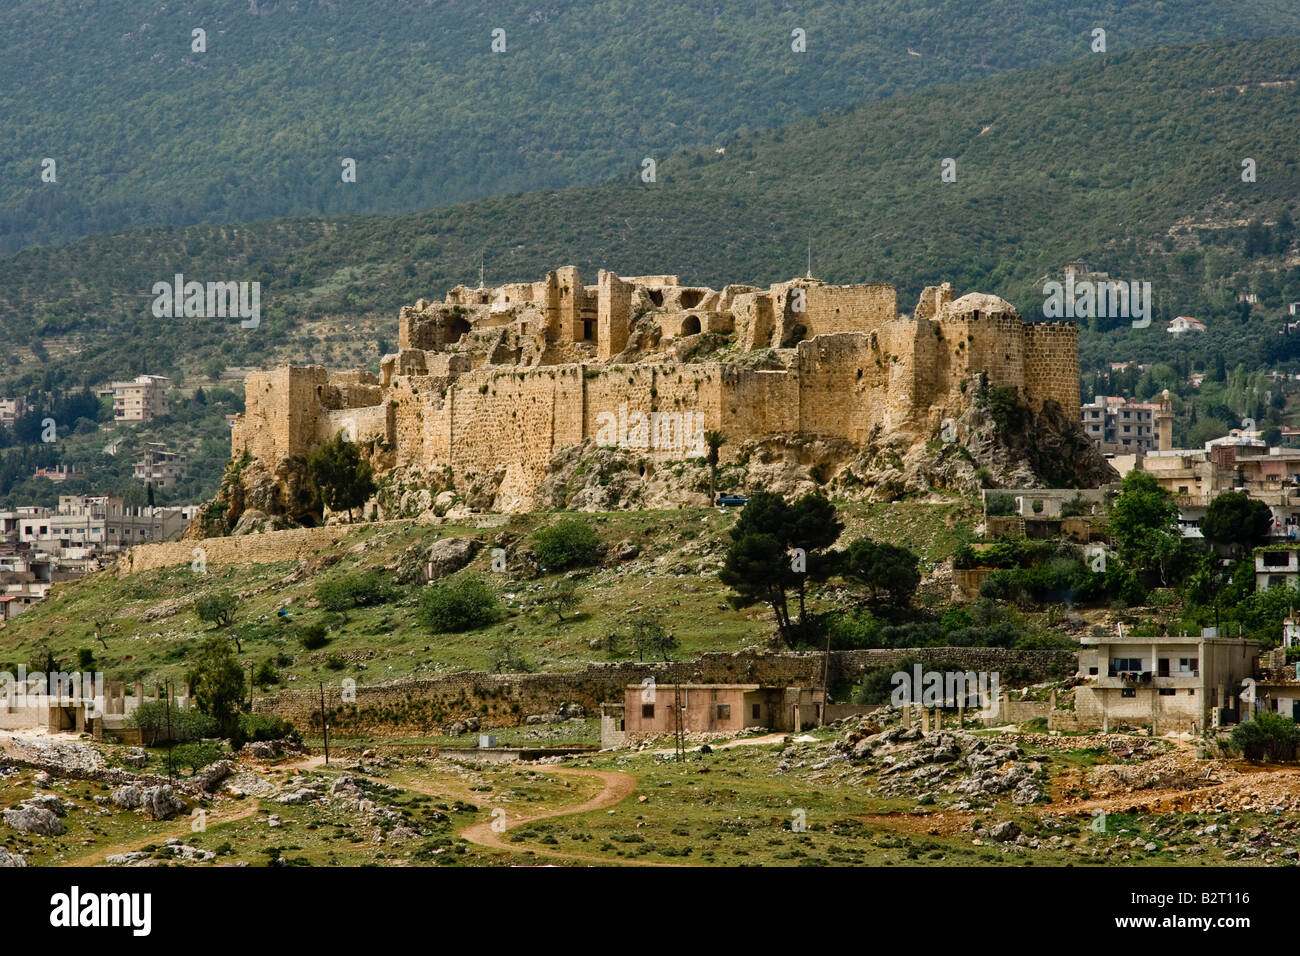 Qalaat Misyaf One of the Assassin Castles in Syria - Stock Image